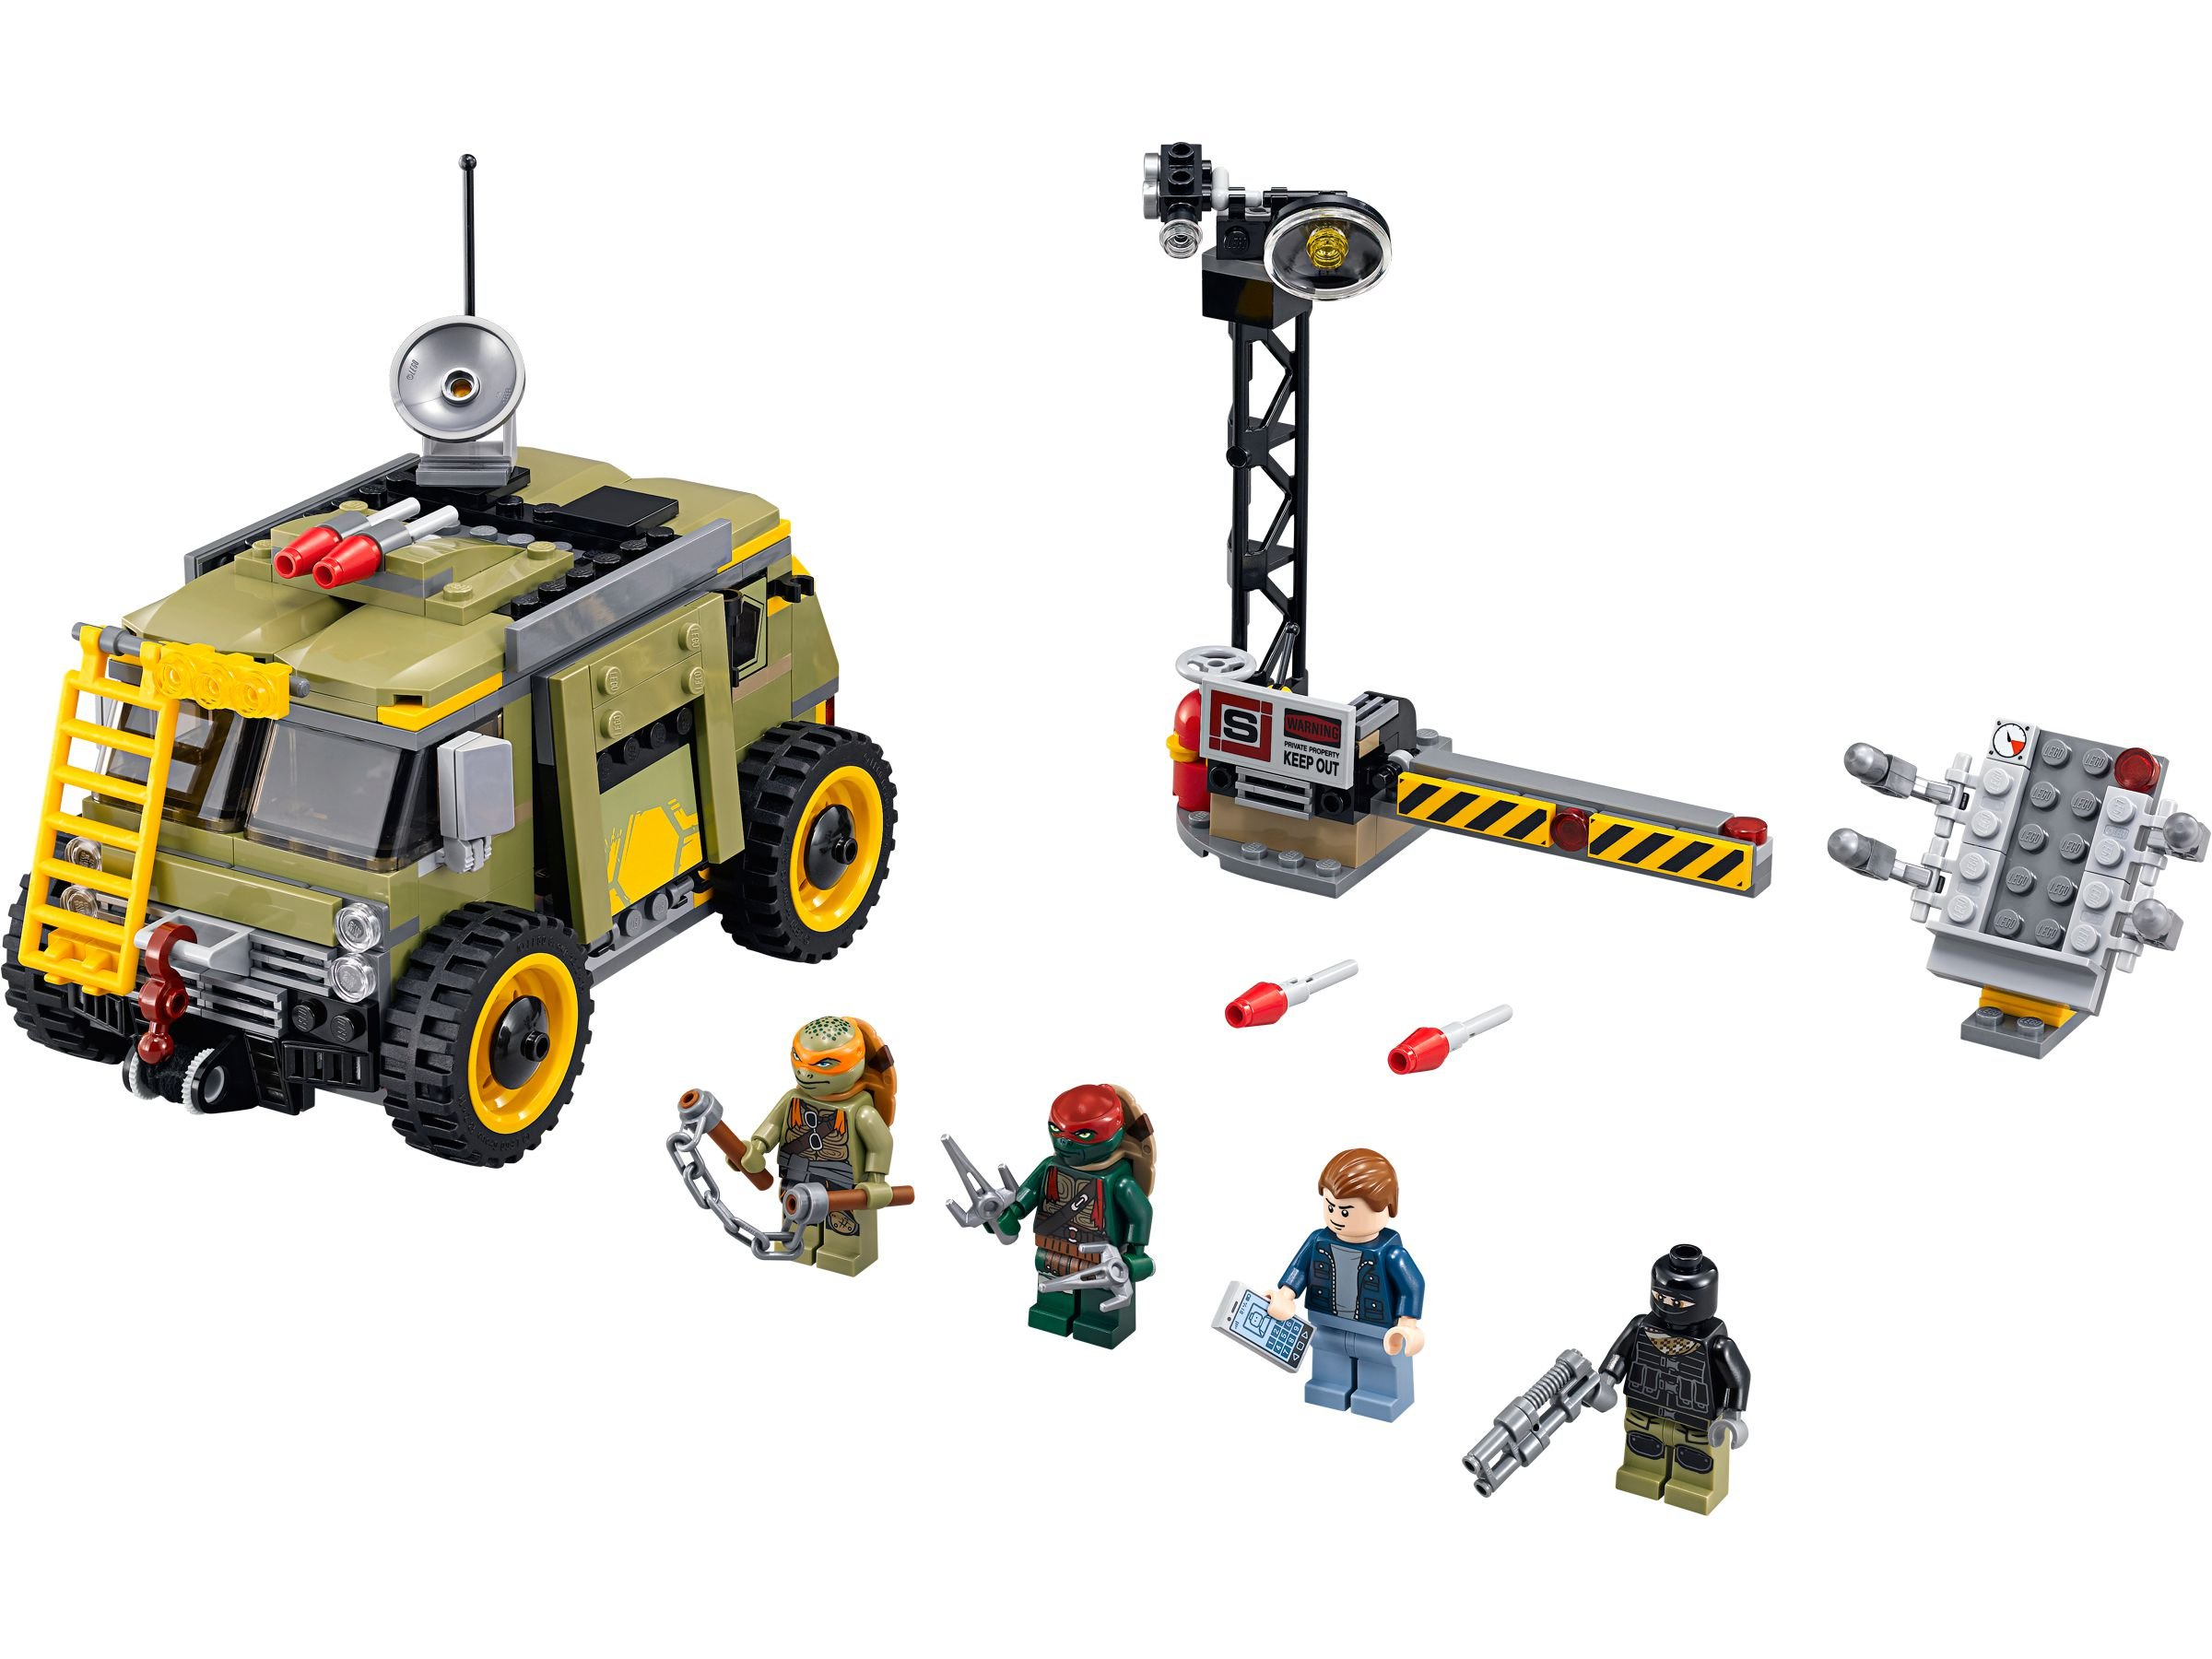 LEGO Teenage Mutant Ninja Turtles 79115 Turtle Van LEGO_79115.jpg